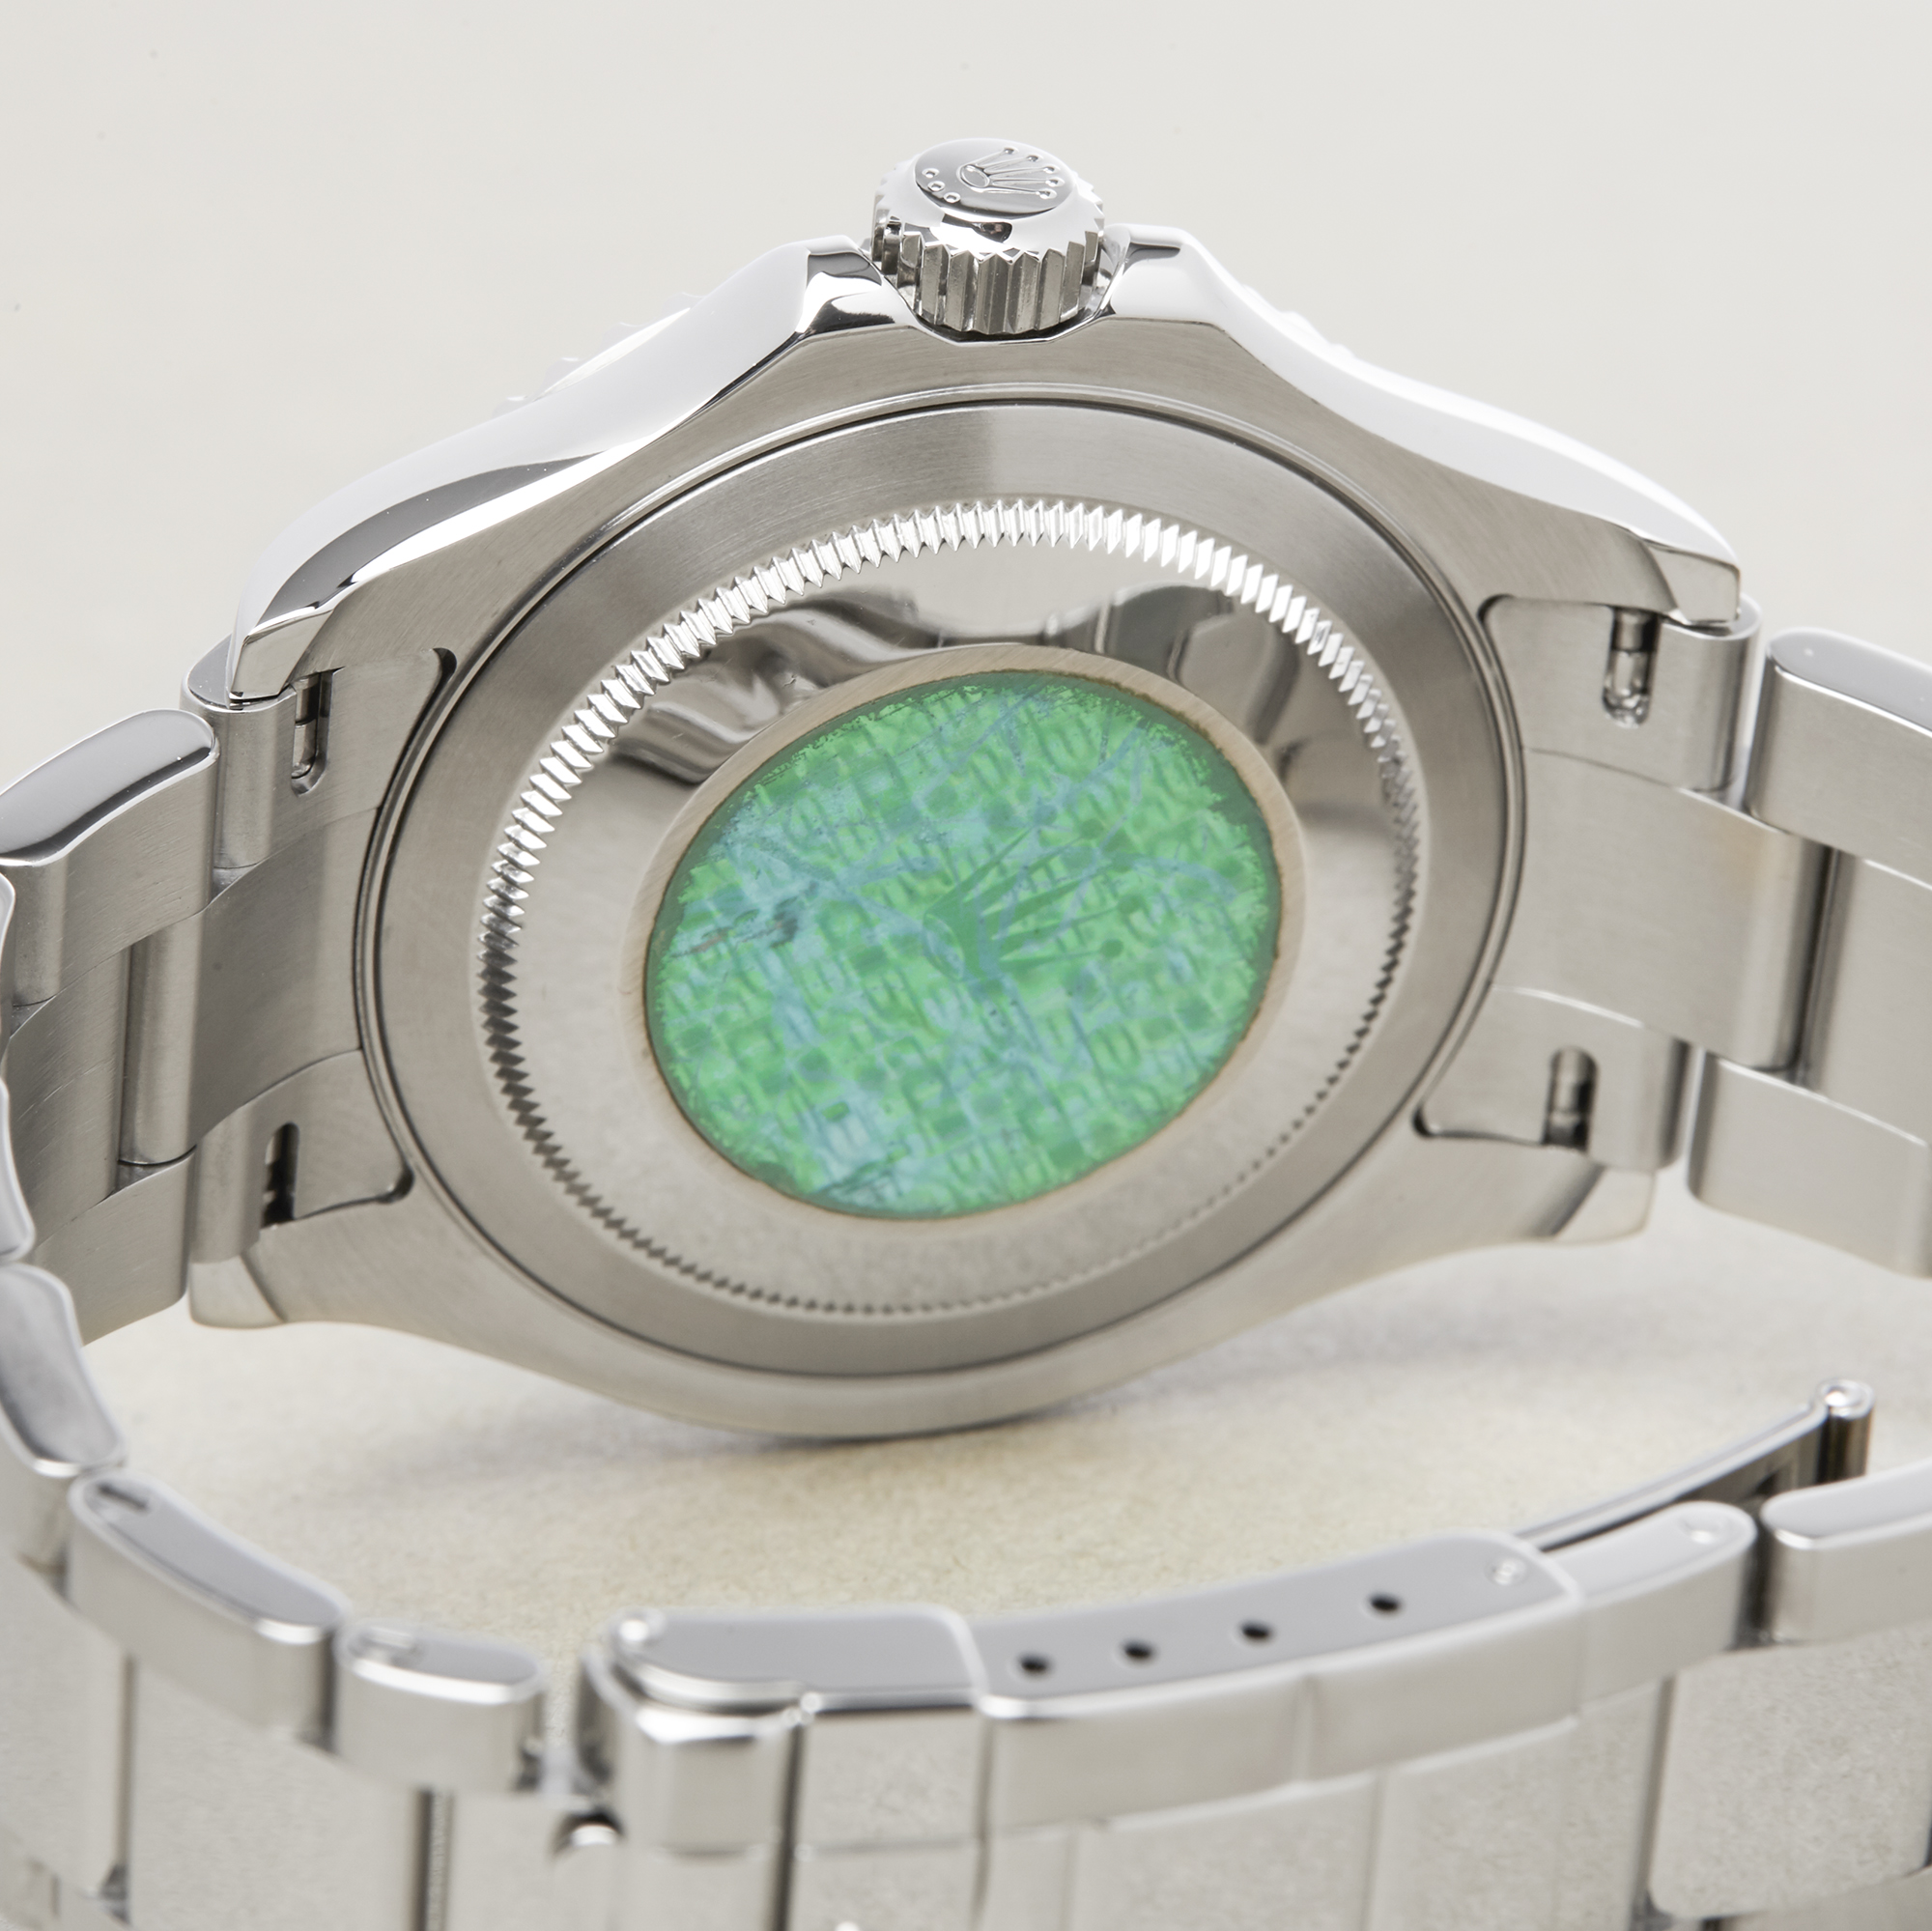 Rolex Yacht-Master 40 16622 Men's Stainless Steel Watch - Image 5 of 10